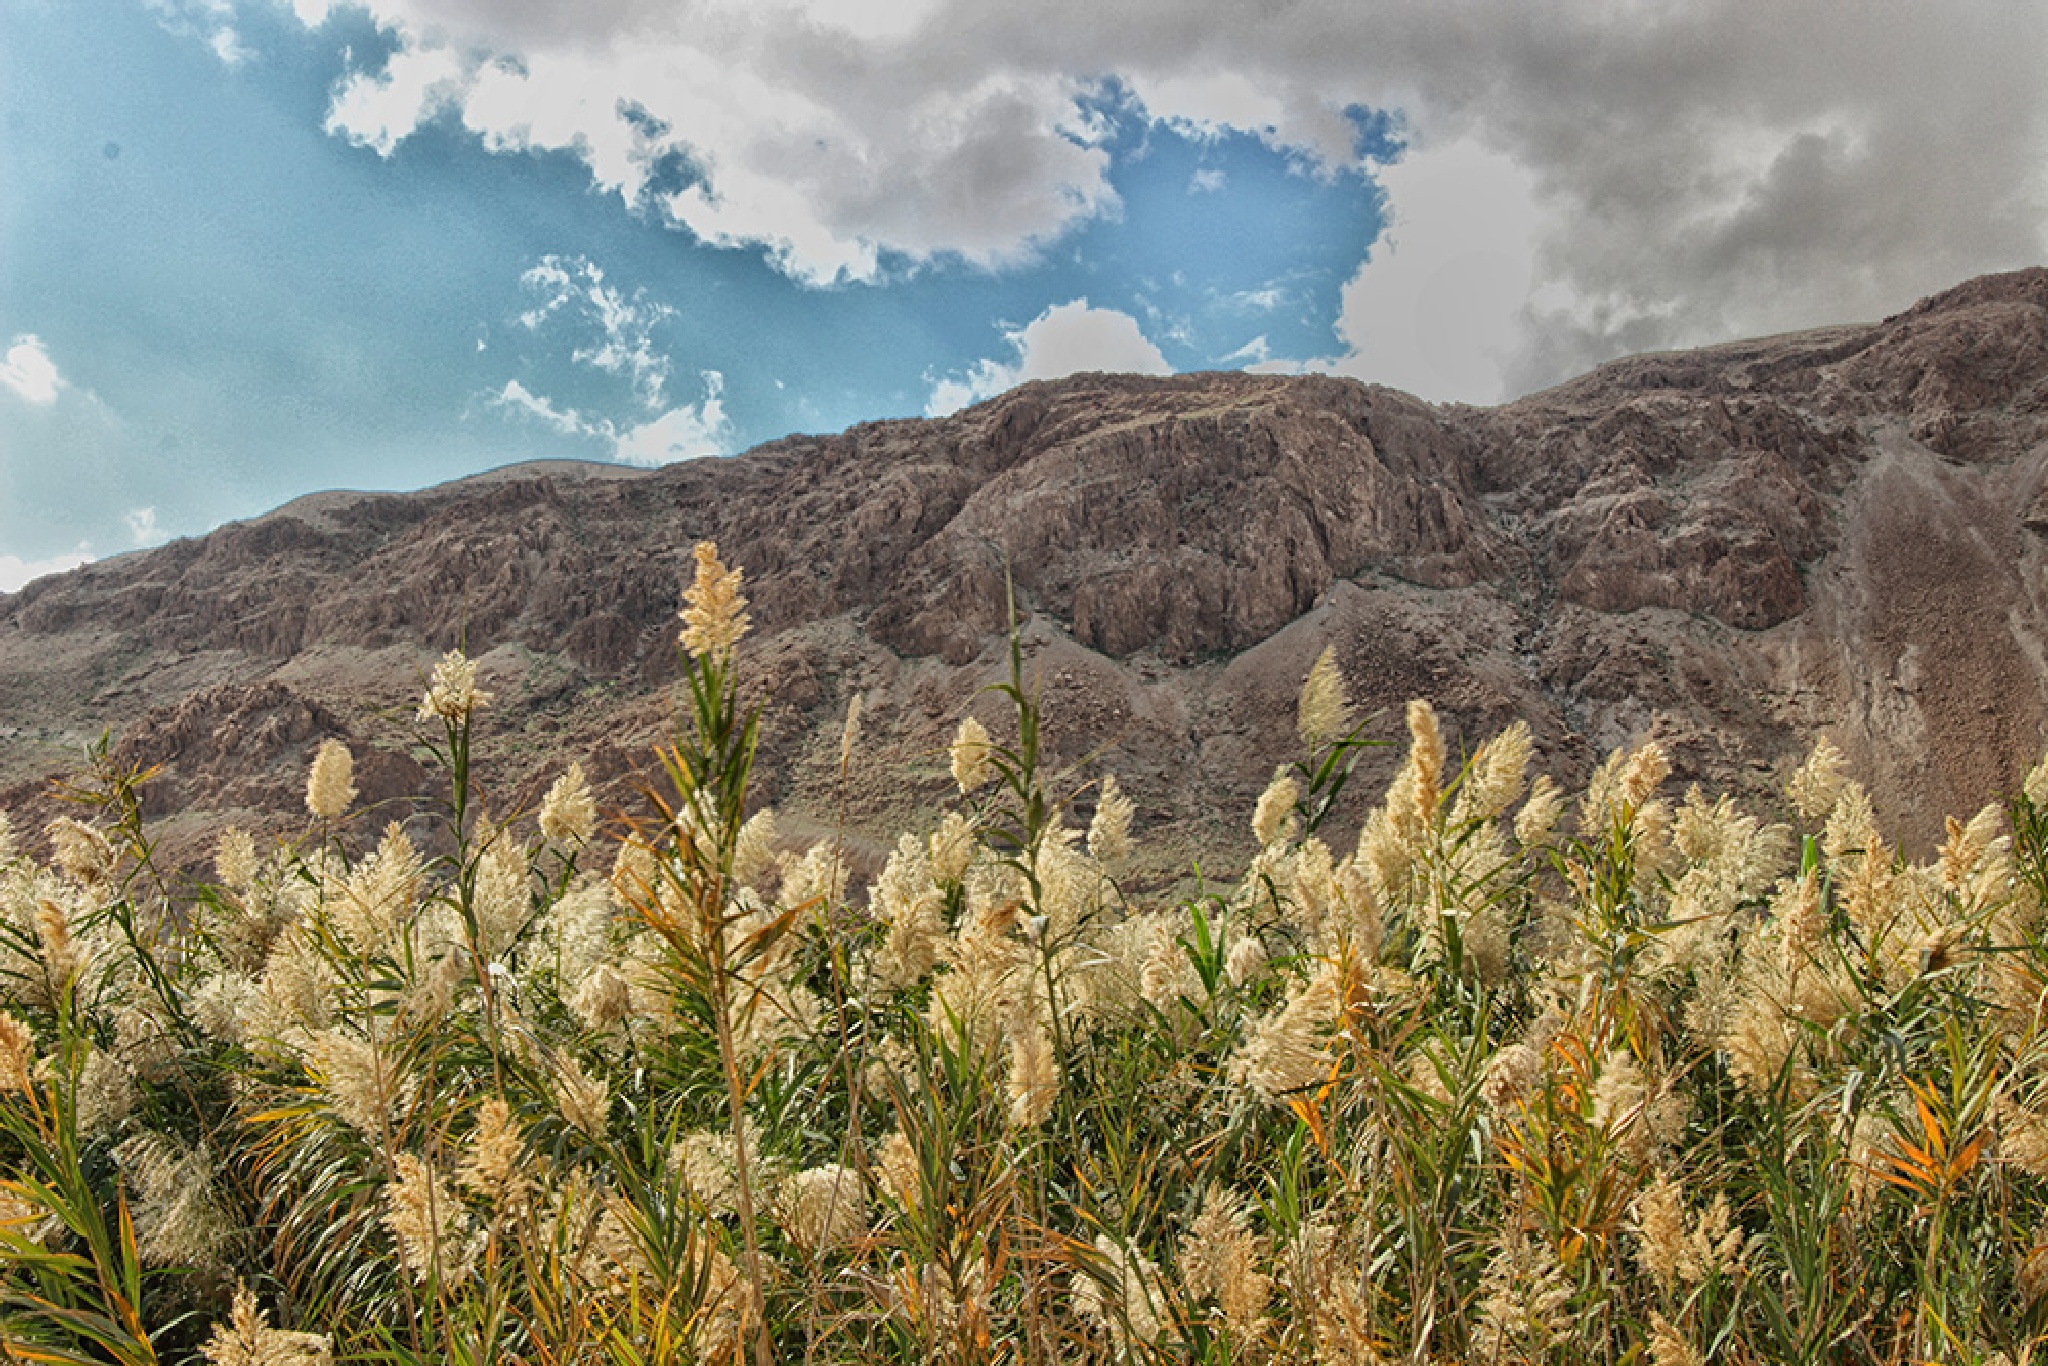 Reed in a national park near the Dead Sea. by Alla Ilyin